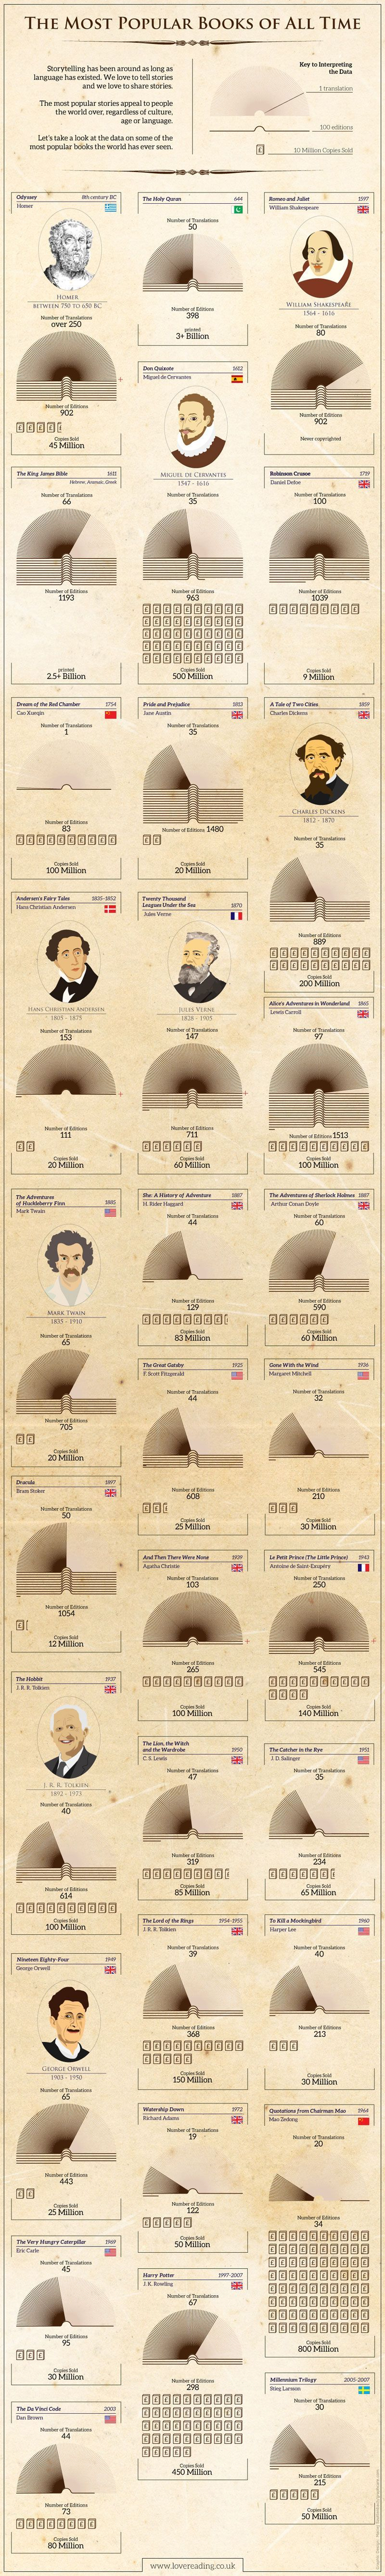 The All Time Most Popular Books In The World Revealed Quran Most